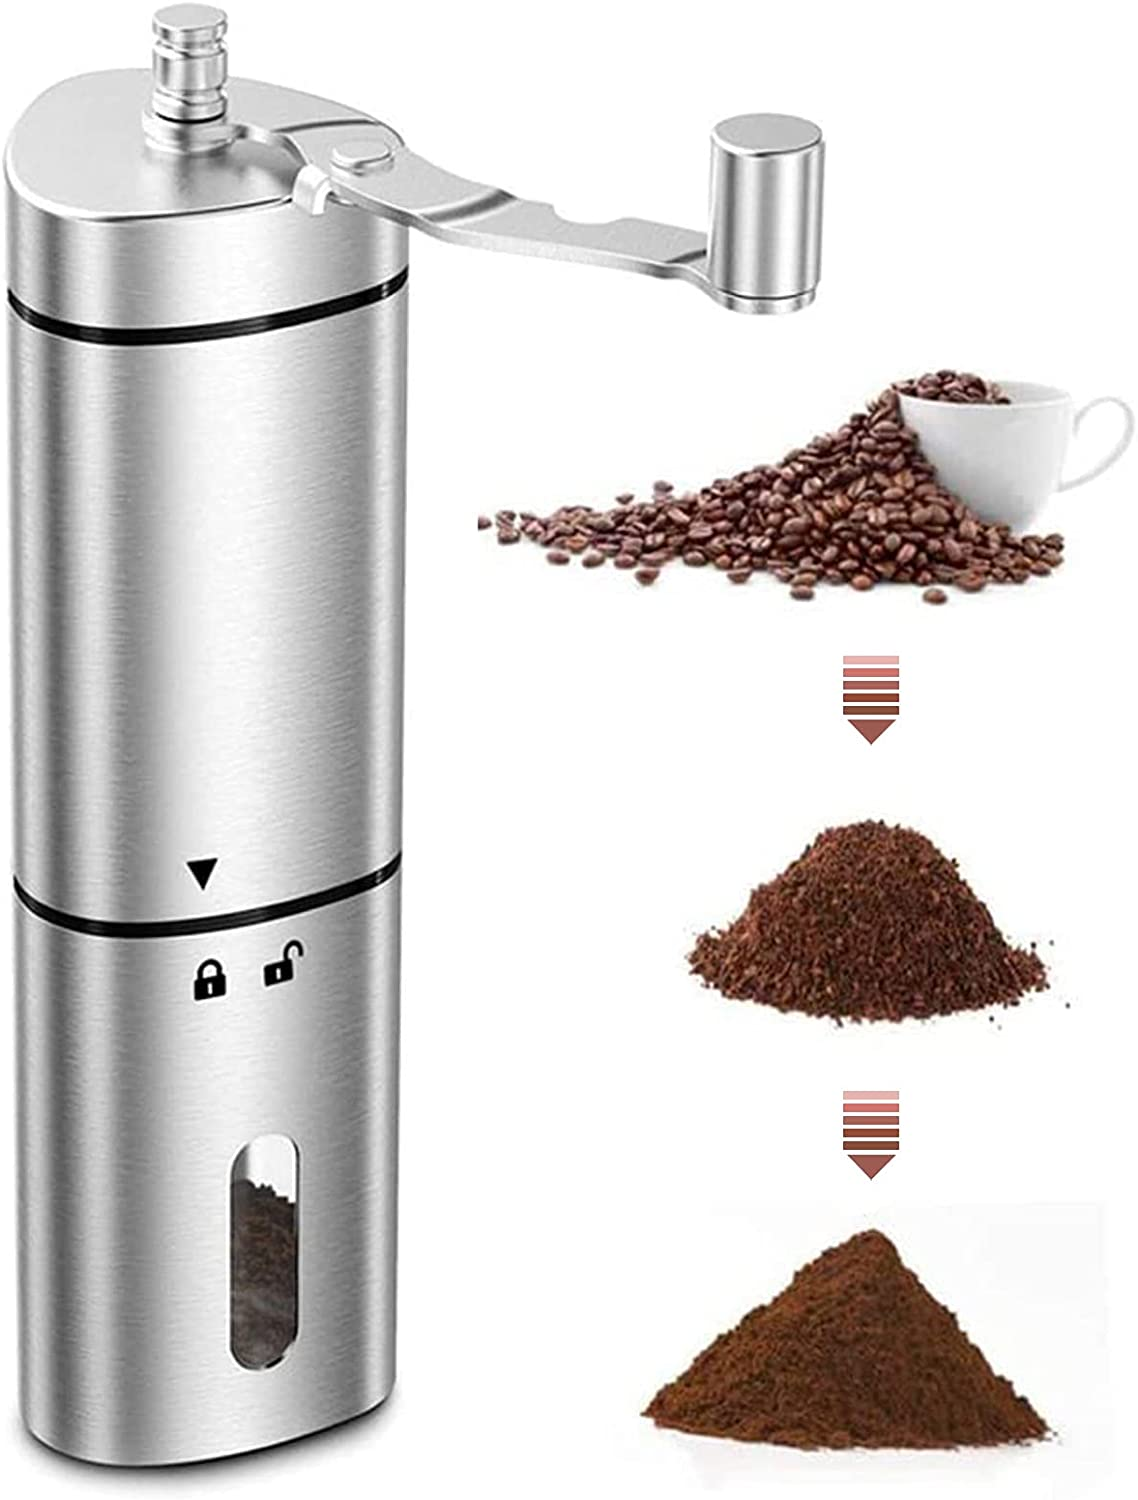 Manual Coffee Some reservation Grinder with AMAMIA Max 73% OFF Adjust